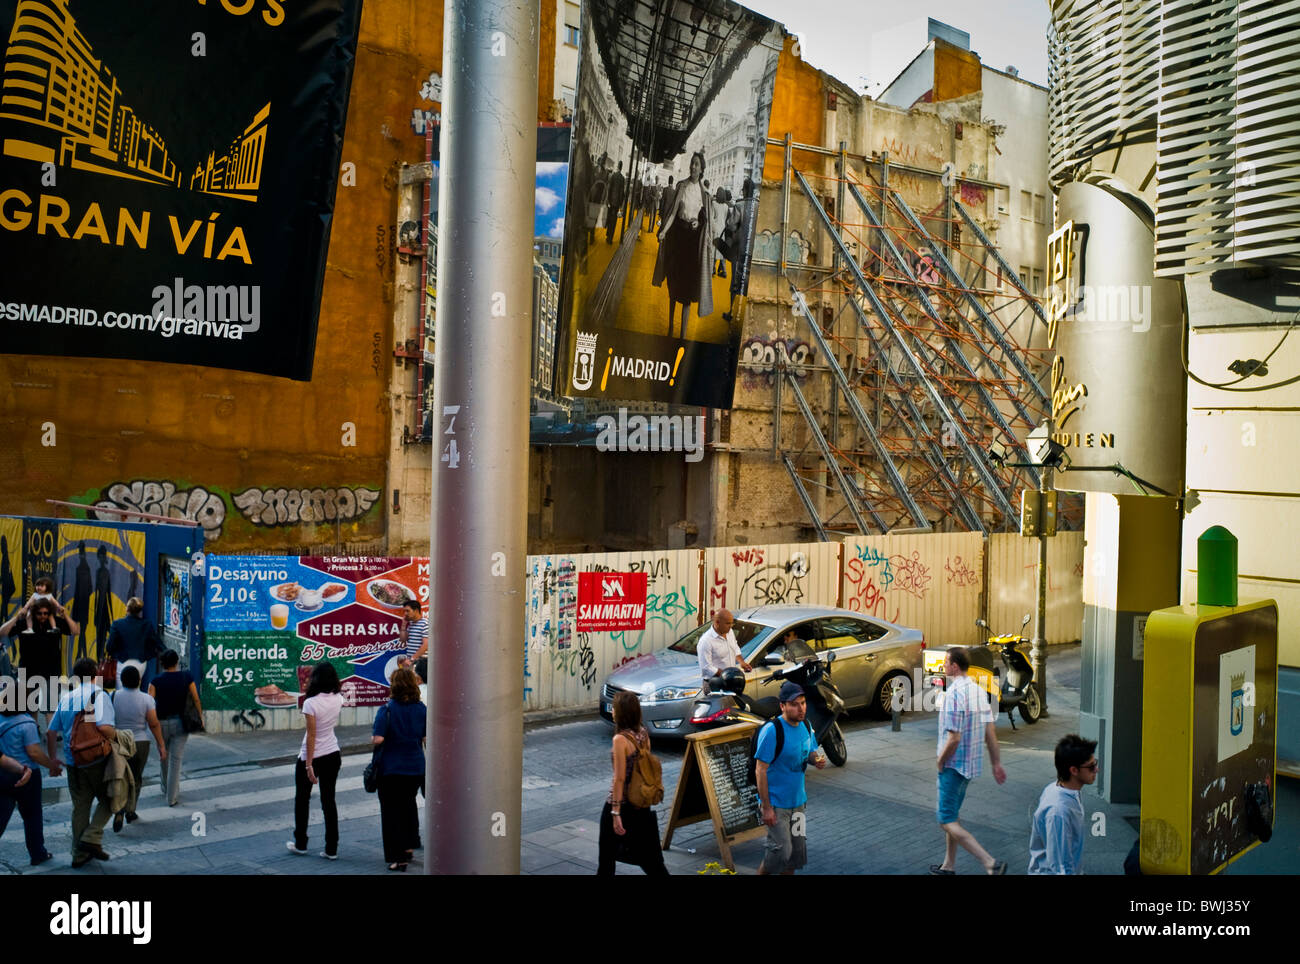 A street scene in Madrid - Stock Image